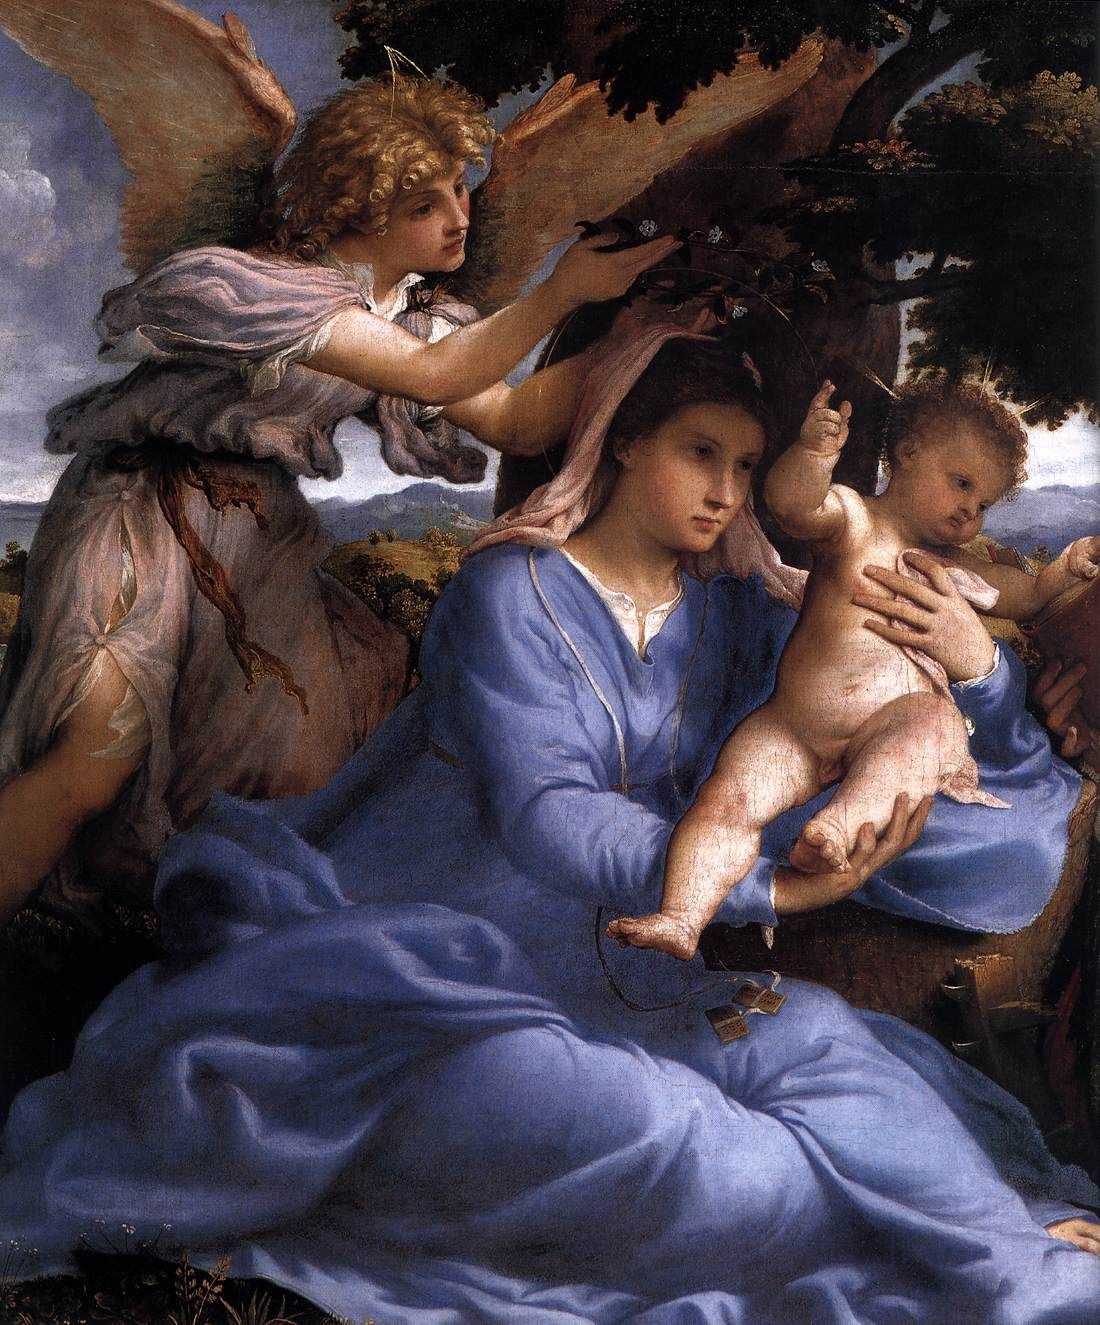 1480 - 1557 Lorenzo Lotto, Madonna and Child with Saints and an Angel (detail), 1527-28, Kunsthistorisches Museum, Vienna